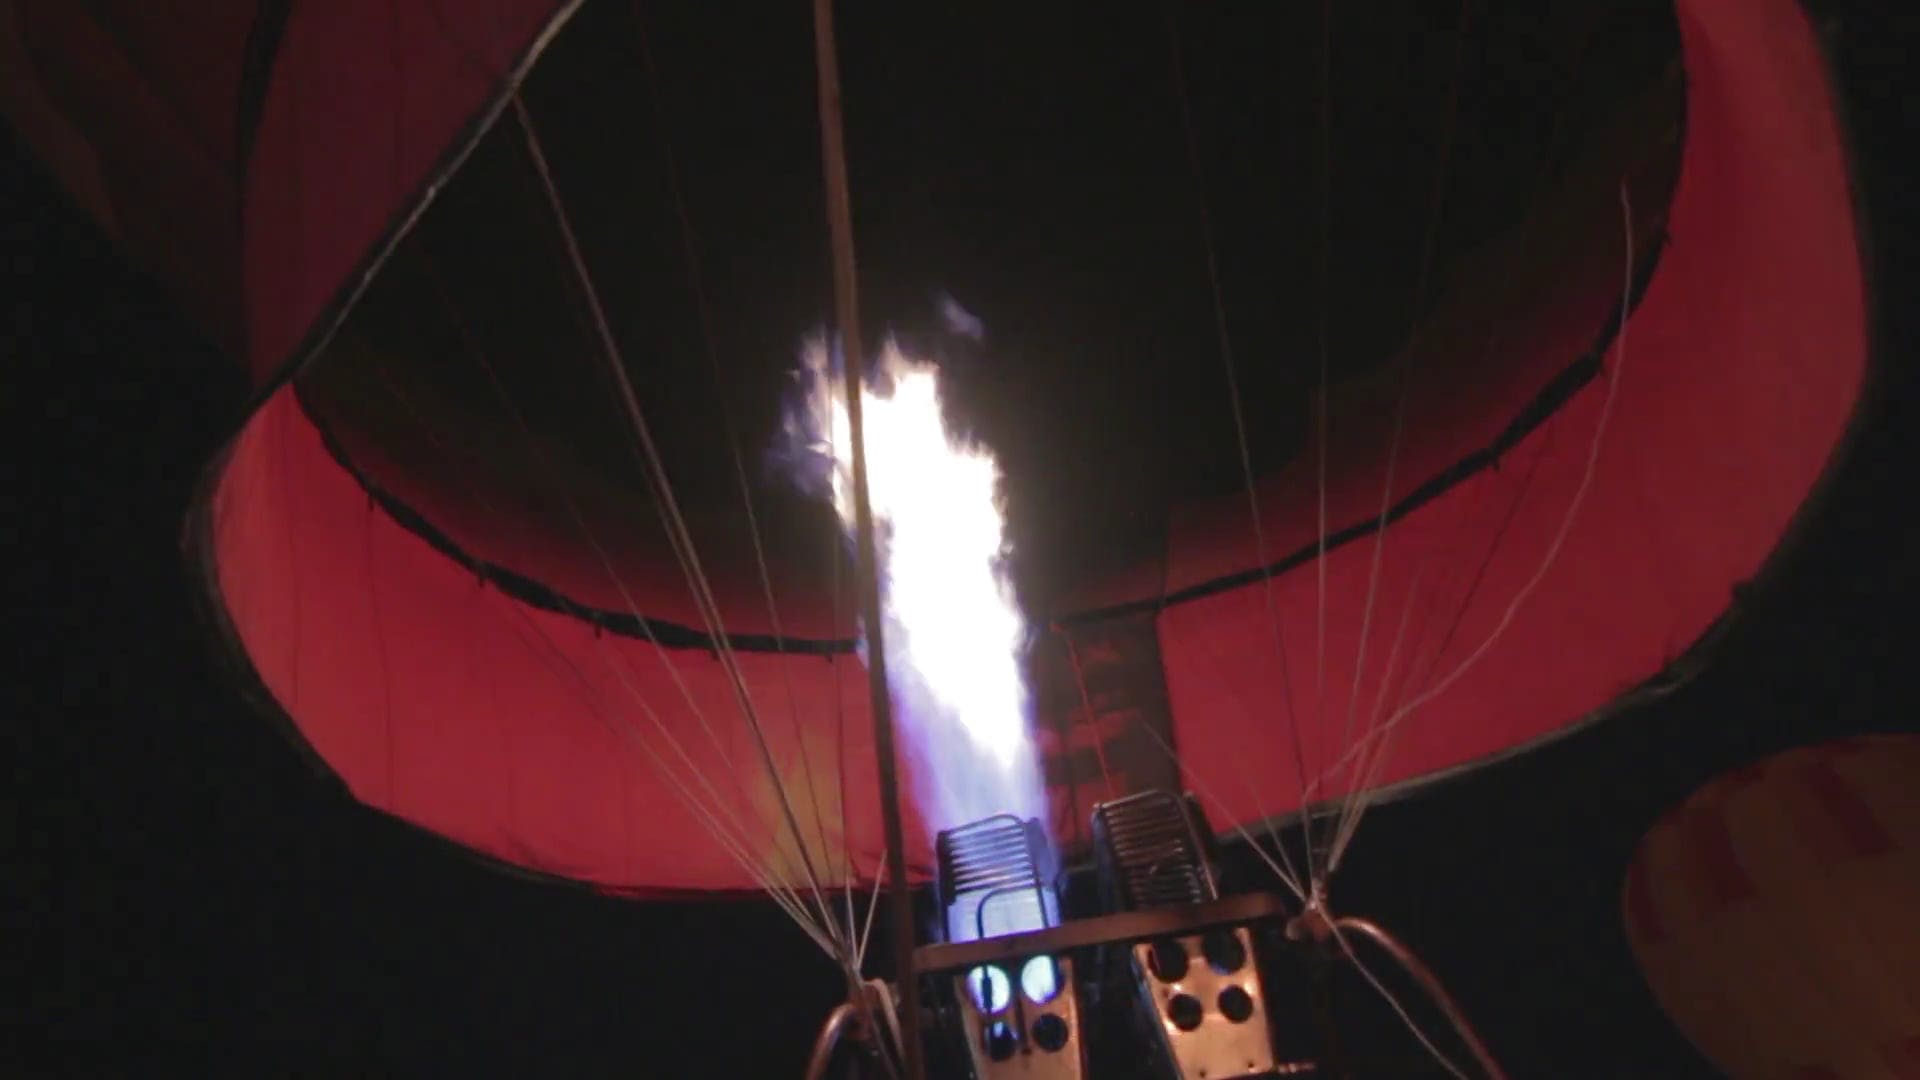 Hot-Air Balloon Heating Up